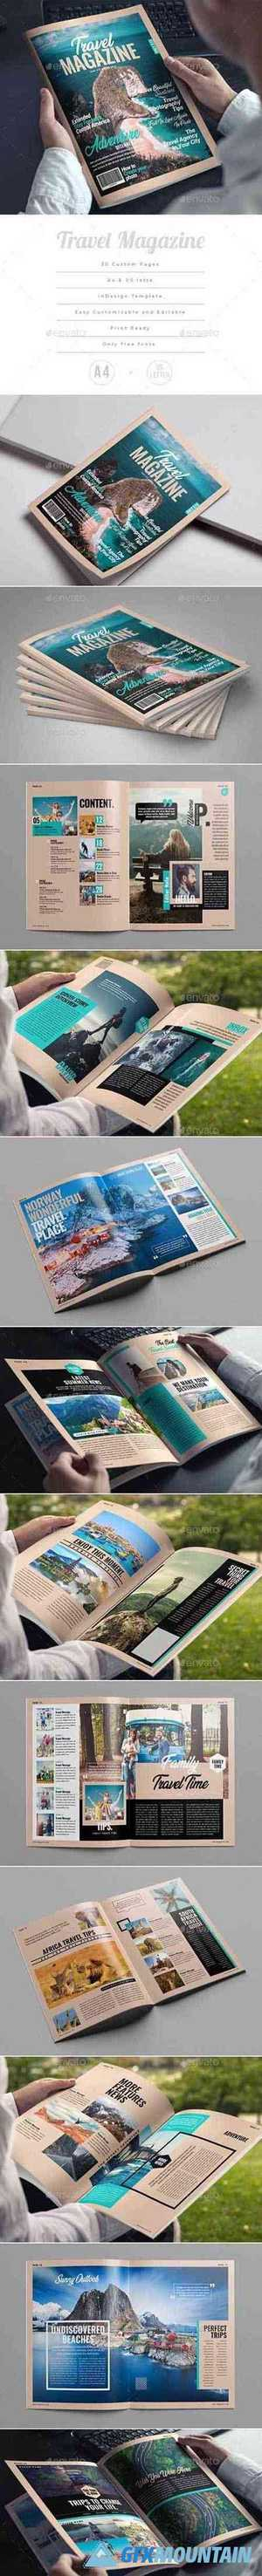 Travel Magazine 25400428